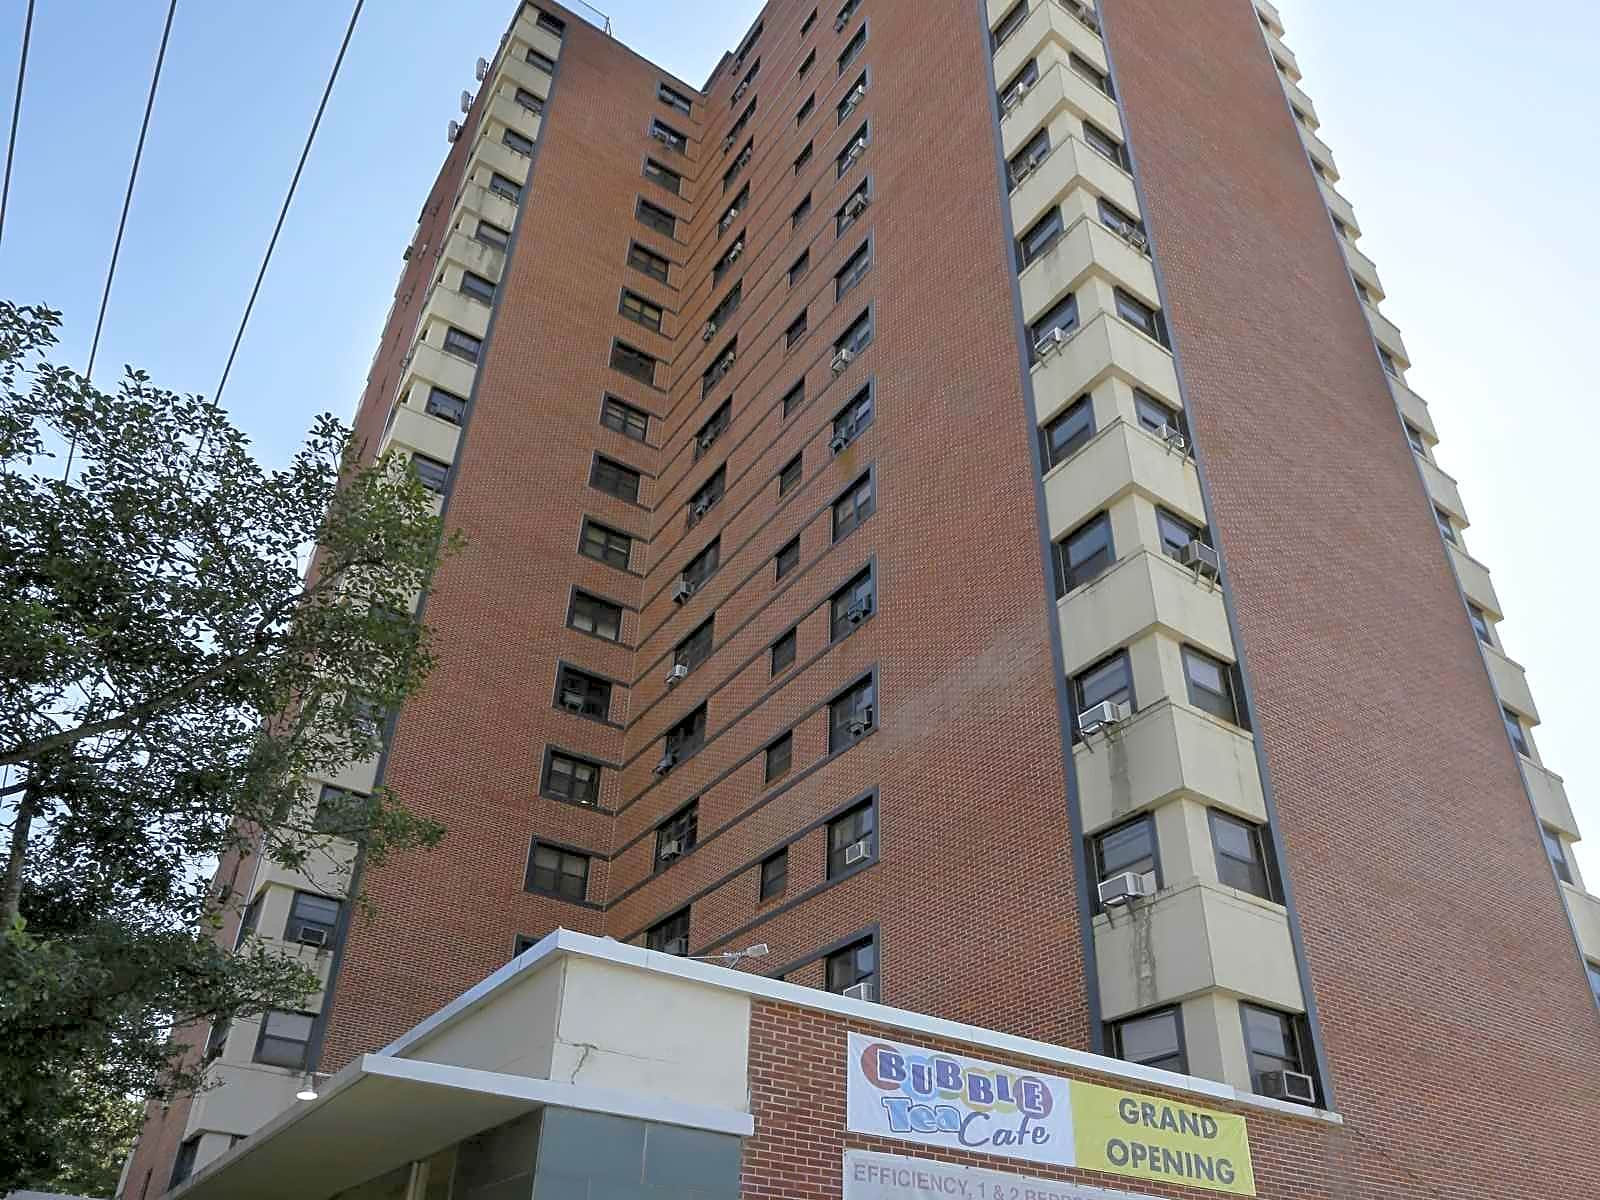 Apartments Near UofSC Cornell Arms for University of South Carolina Students in Columbia, SC